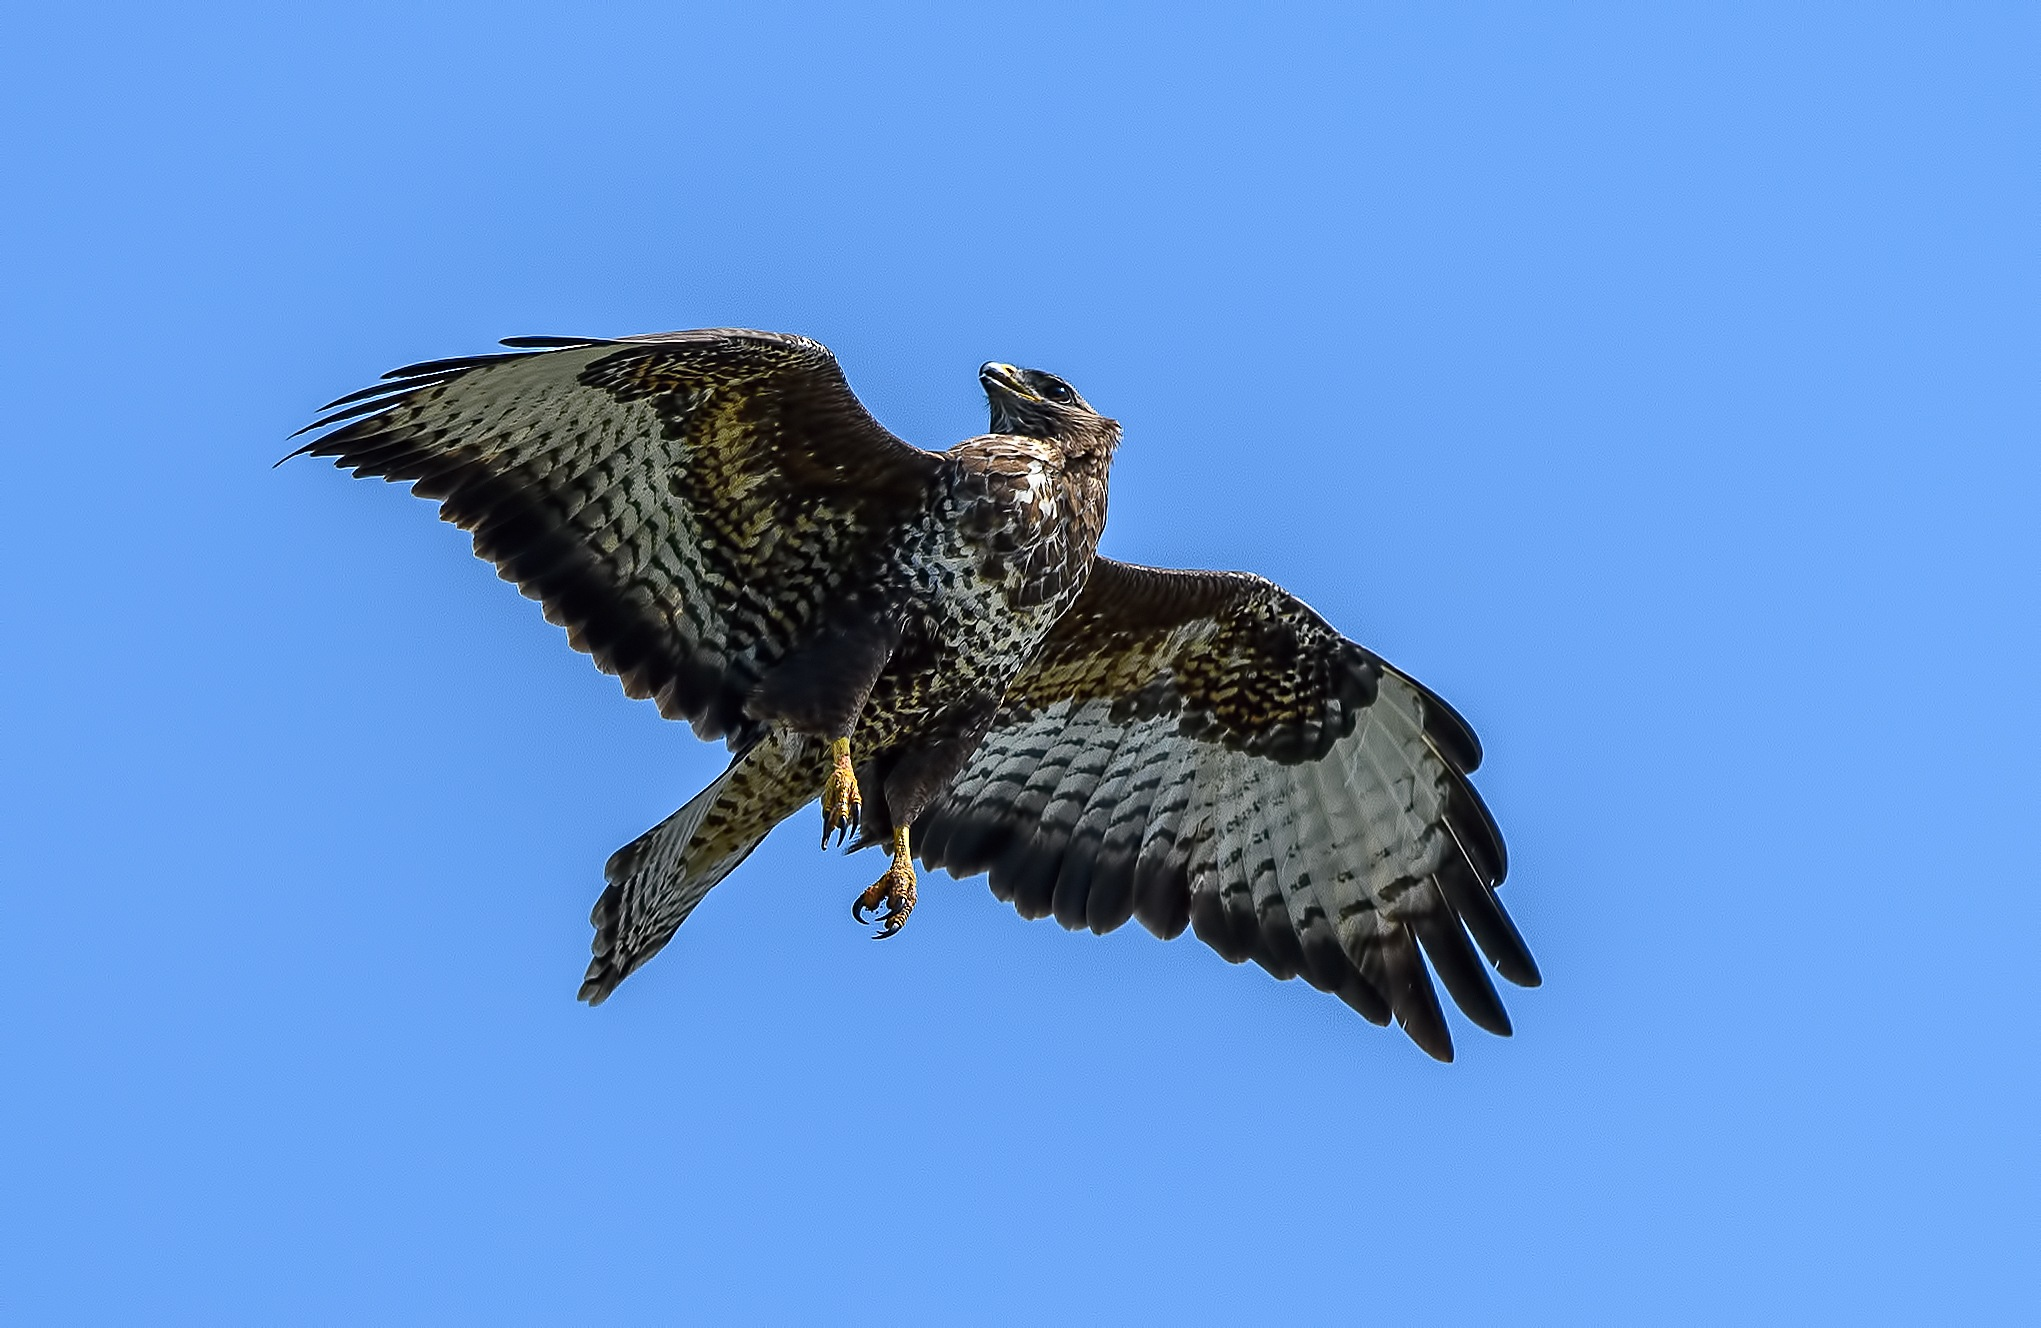 Buzzard being chased by Paul Collins